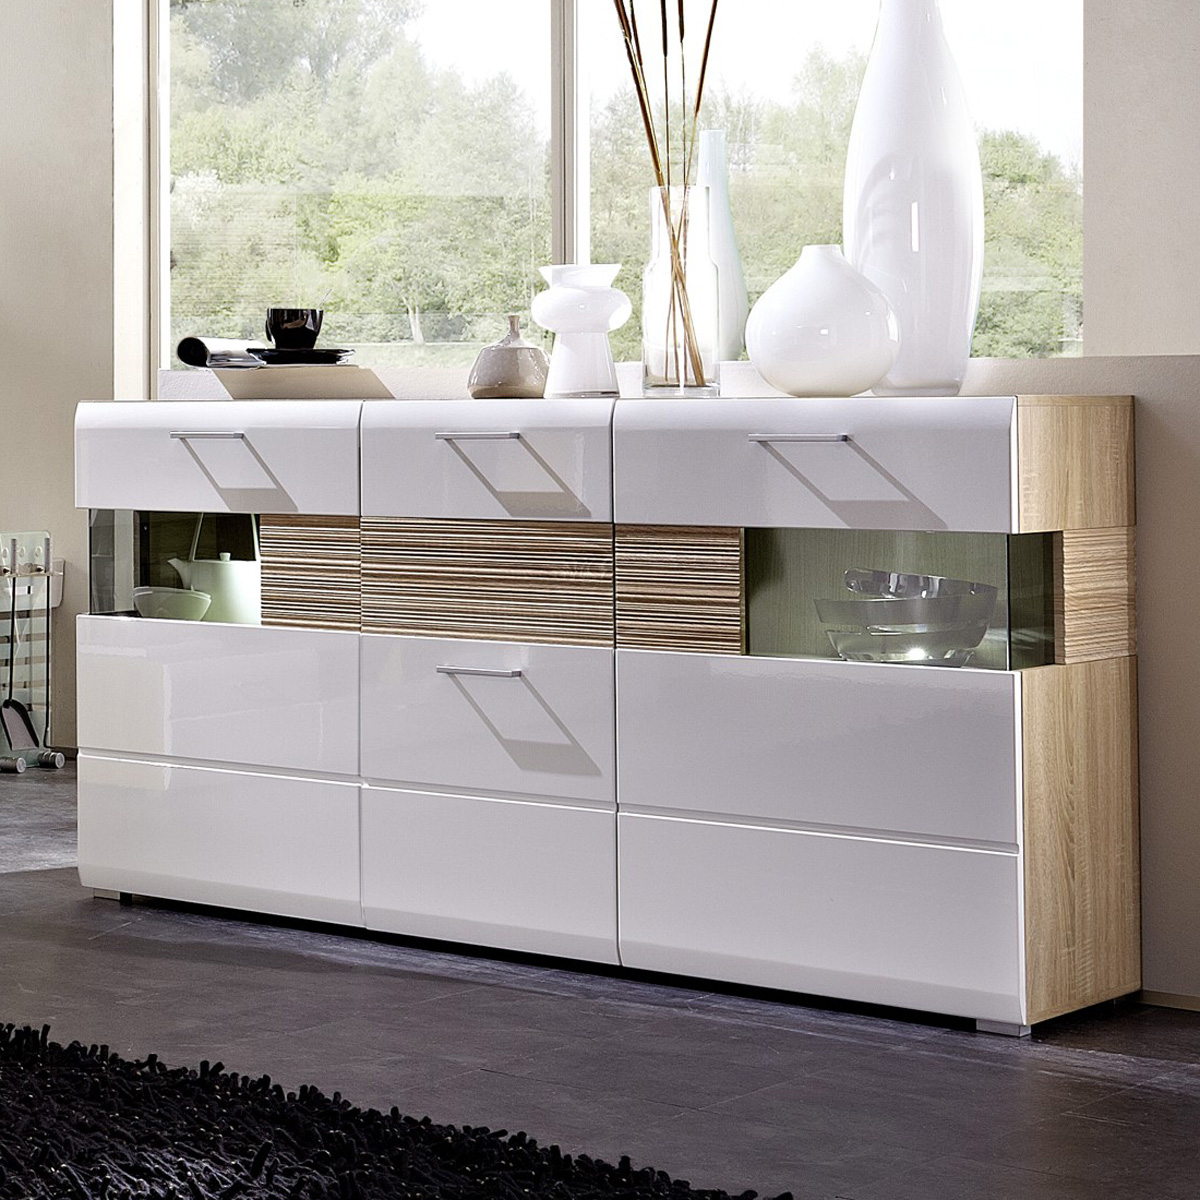 sideboard nandez kommode wei hochglanz sonoma eiche s gerau beleuchtung ebay. Black Bedroom Furniture Sets. Home Design Ideas